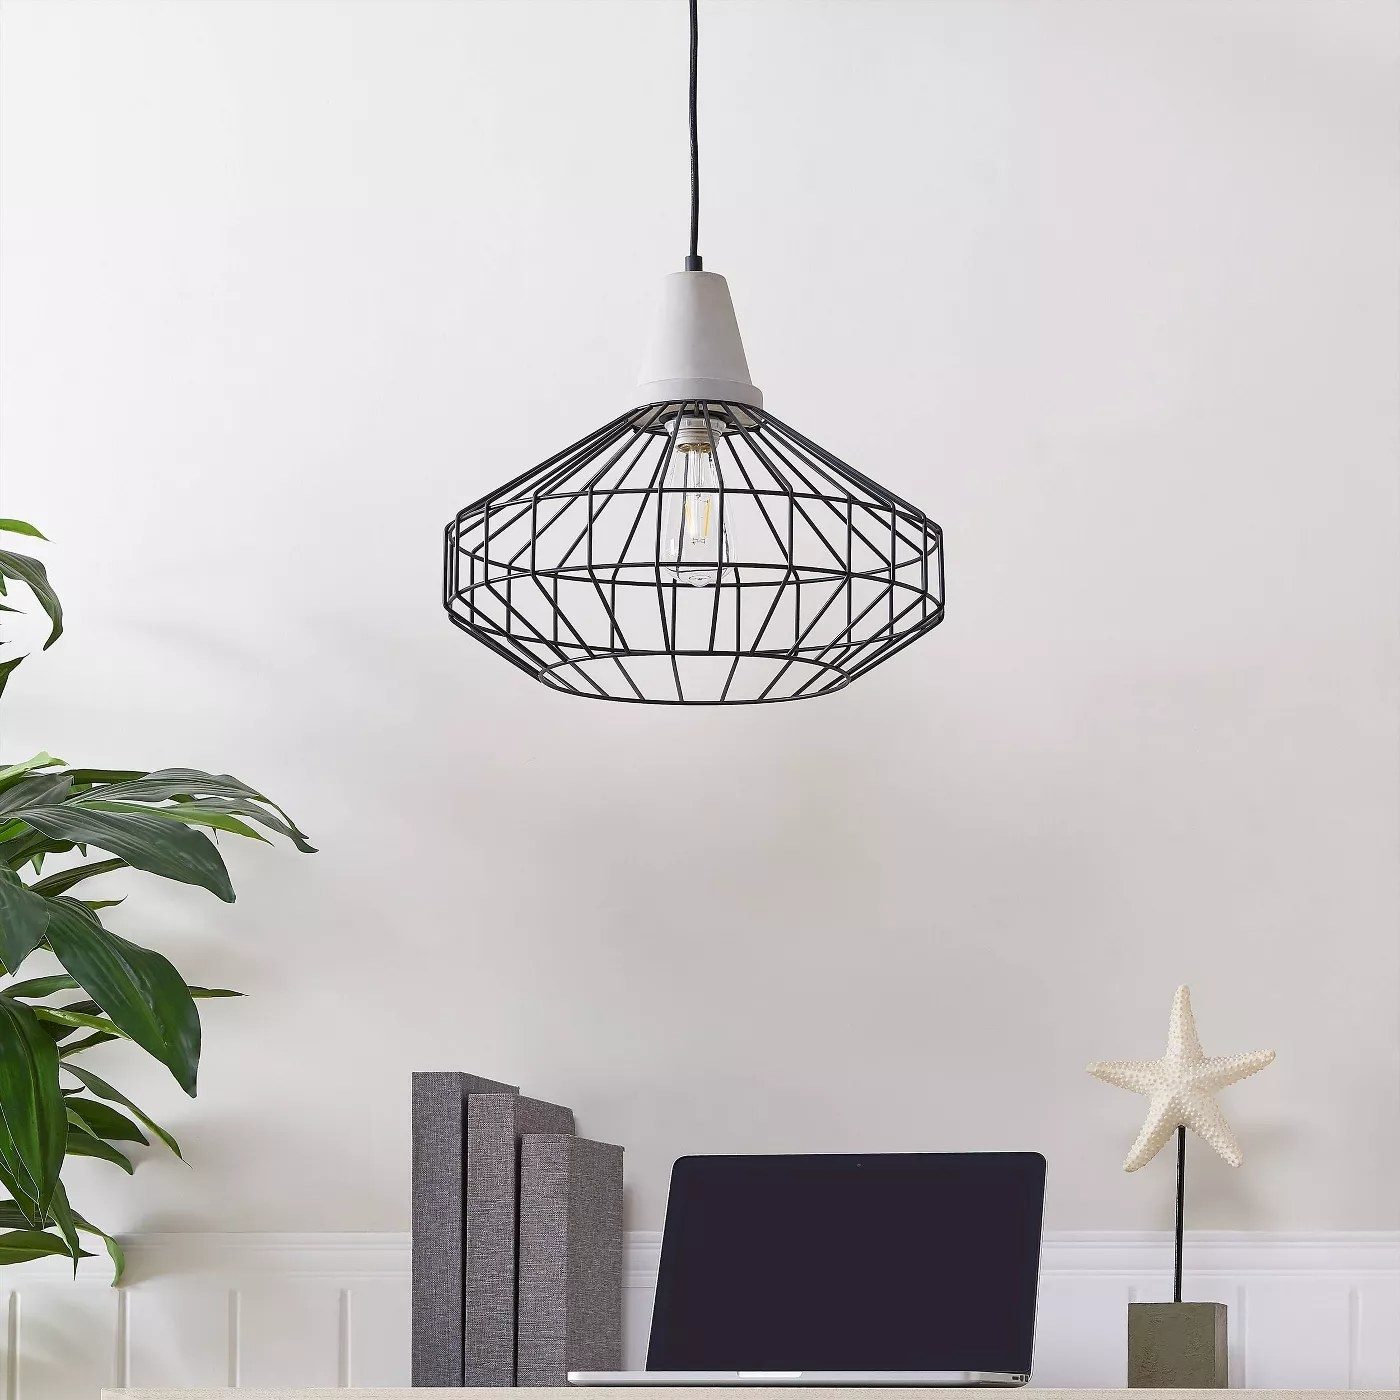 The pendant lamp with a black cage shade